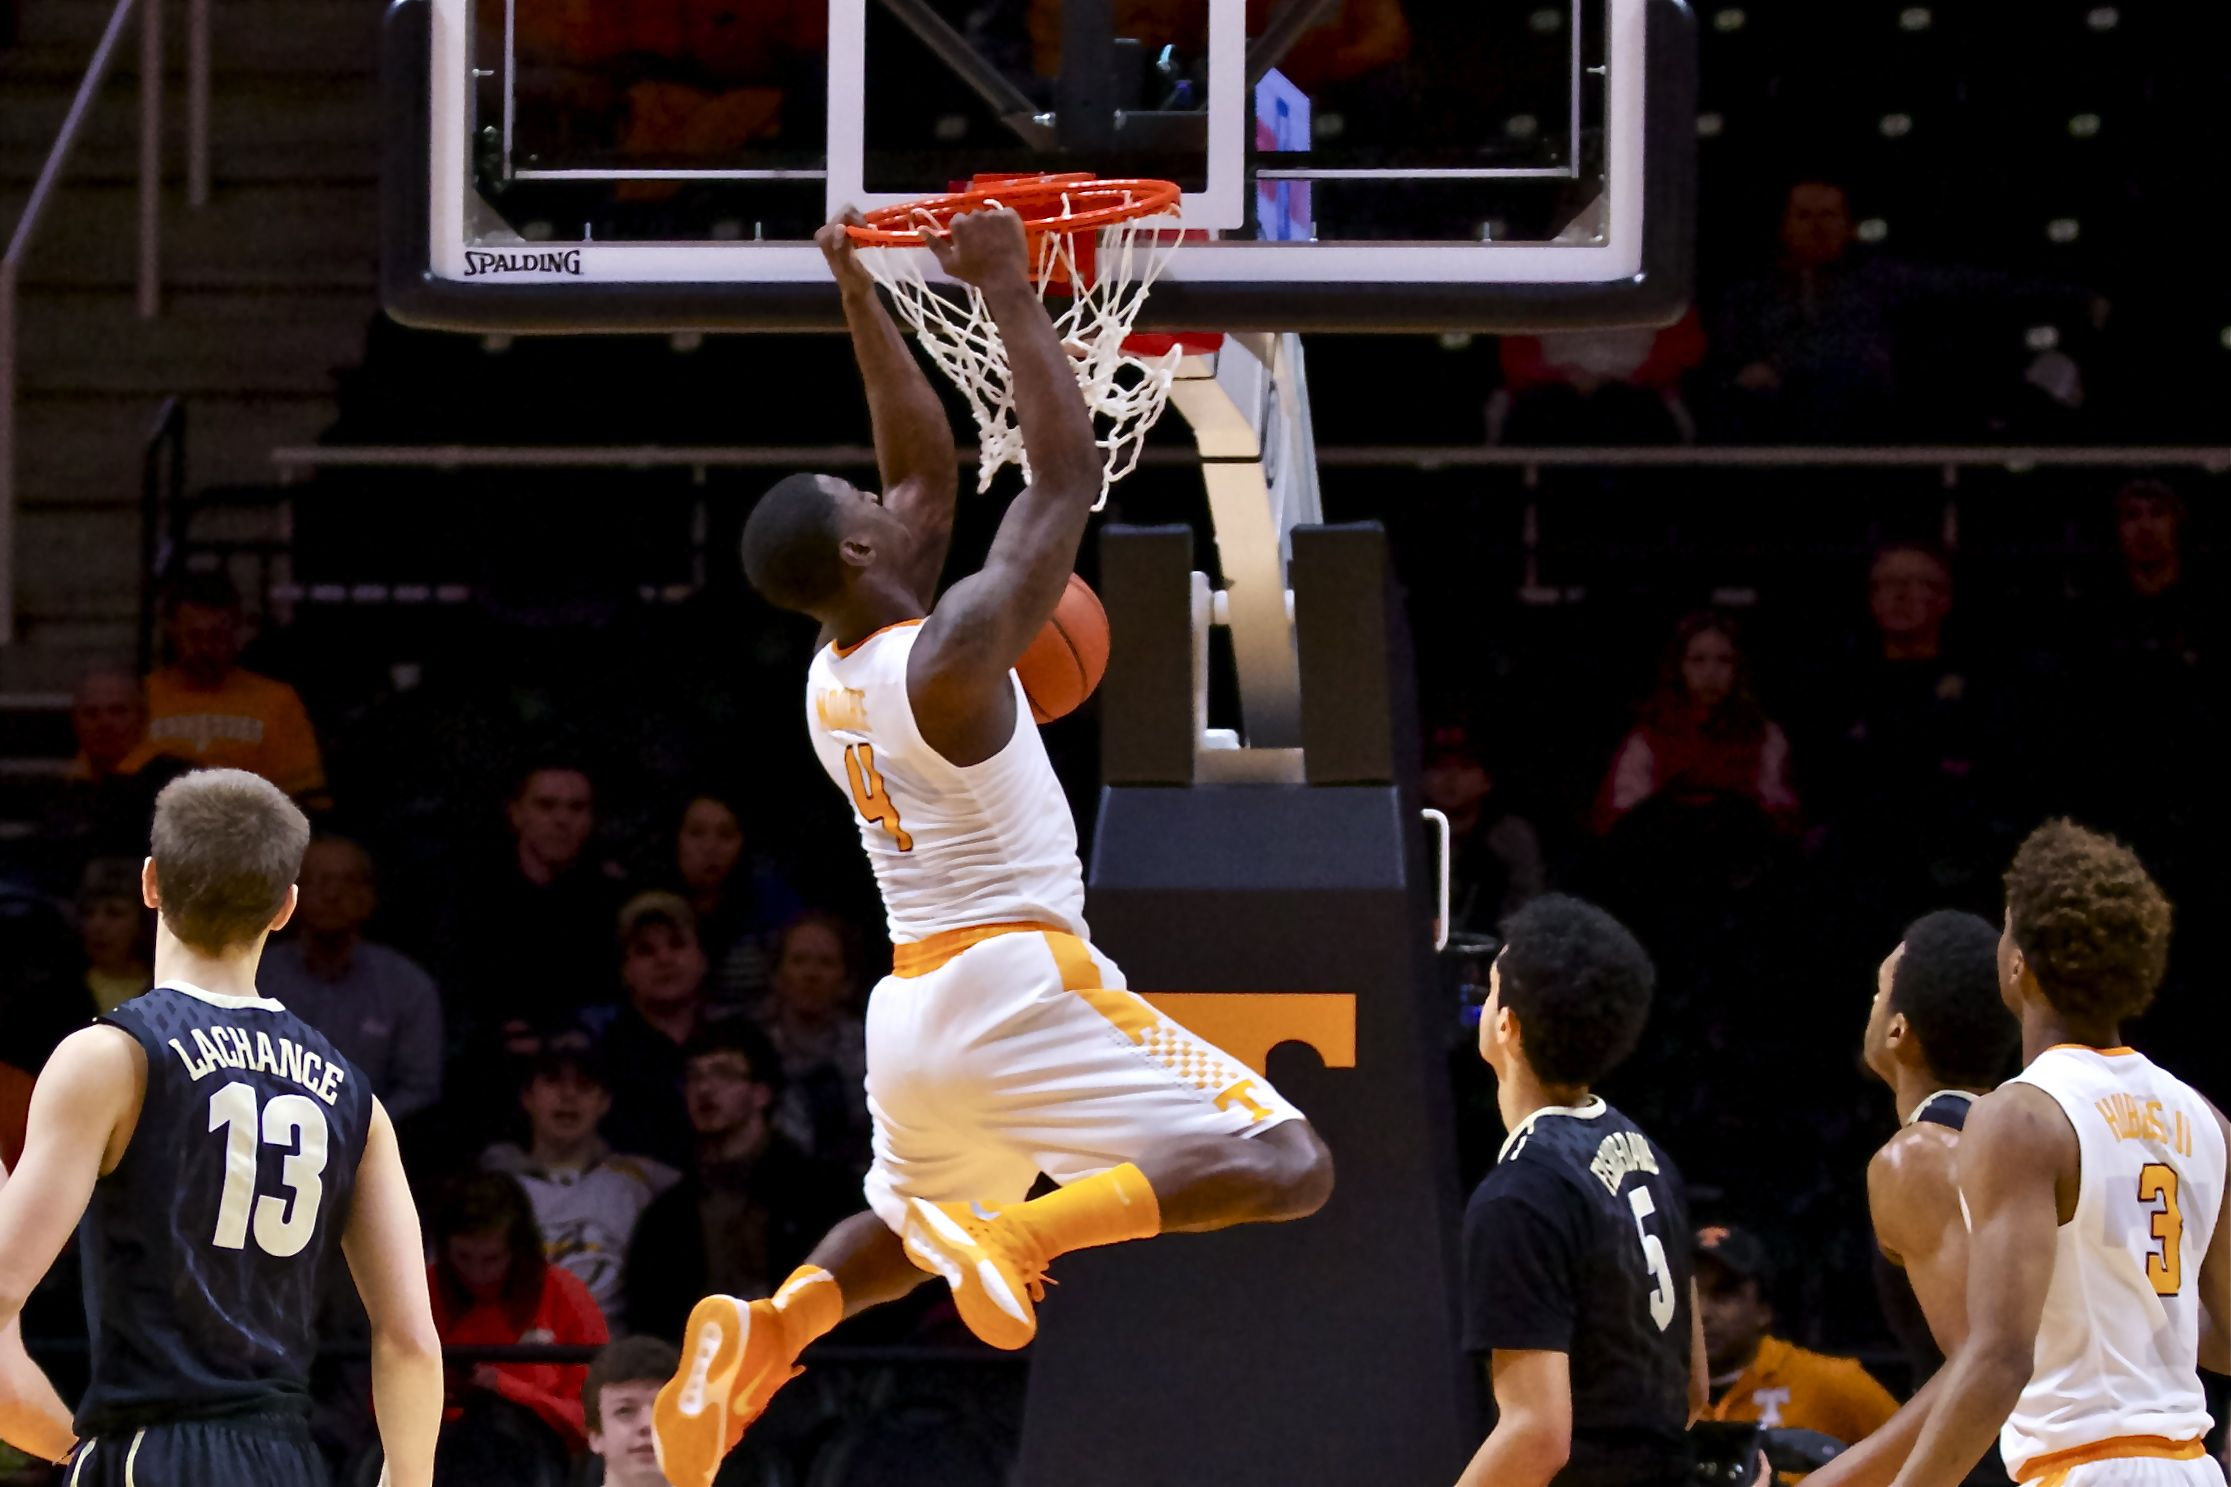 Photo Gallery: Tennessee vs. Vanderbilt Action 1-20-16